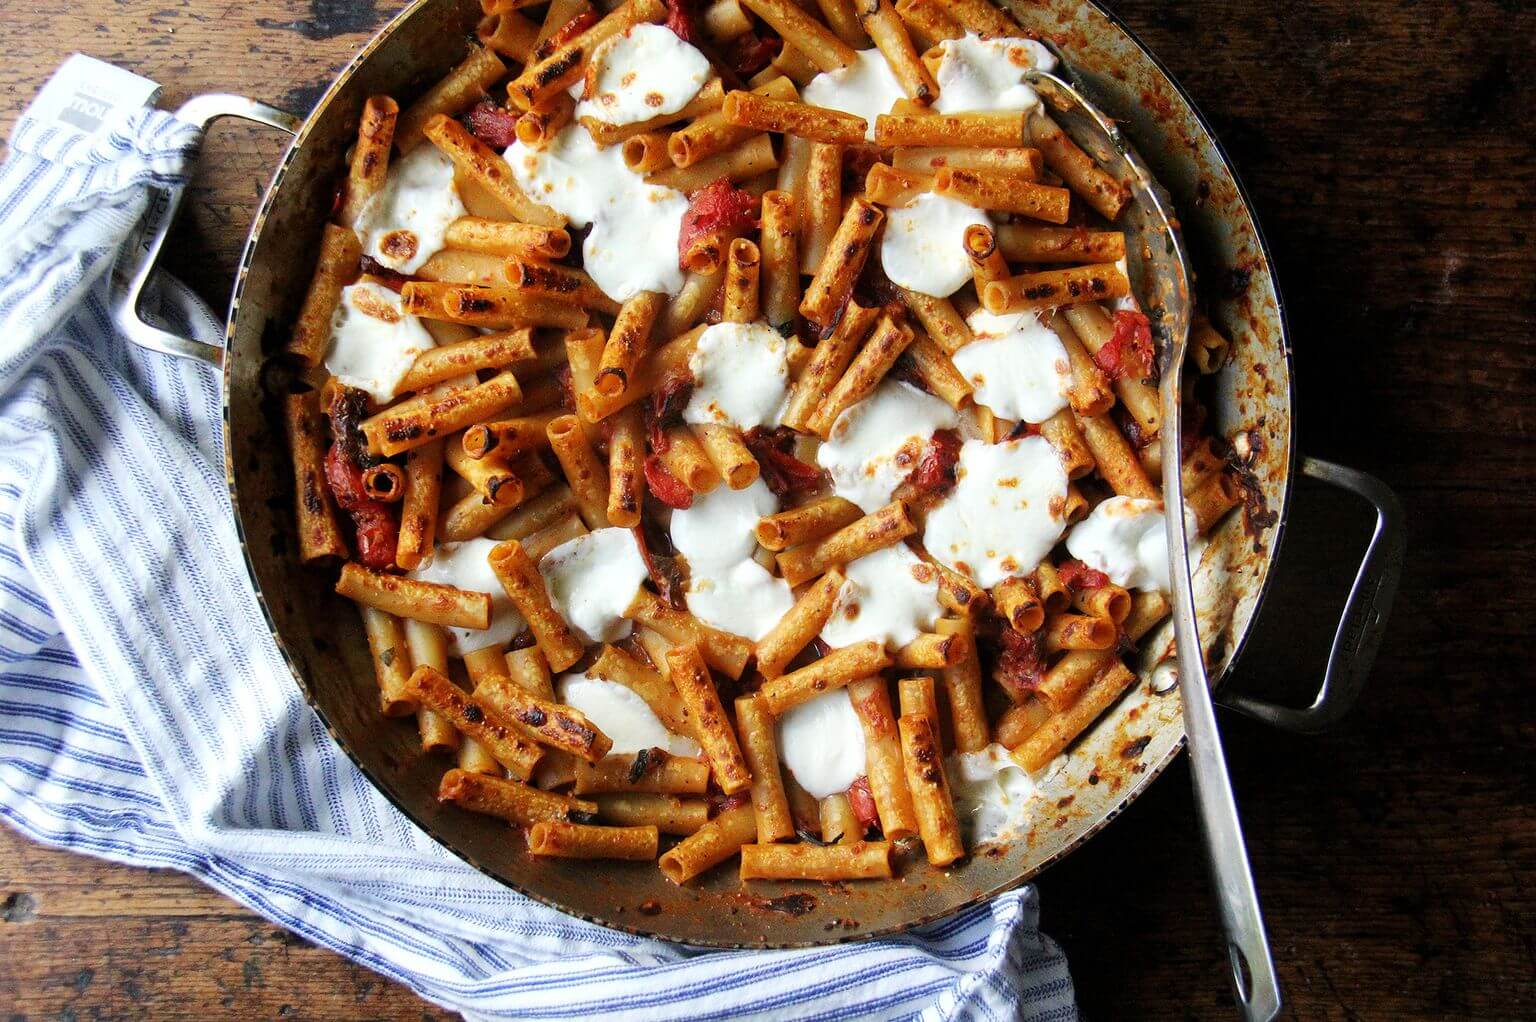 A large skillet of one-pan baked ziti.